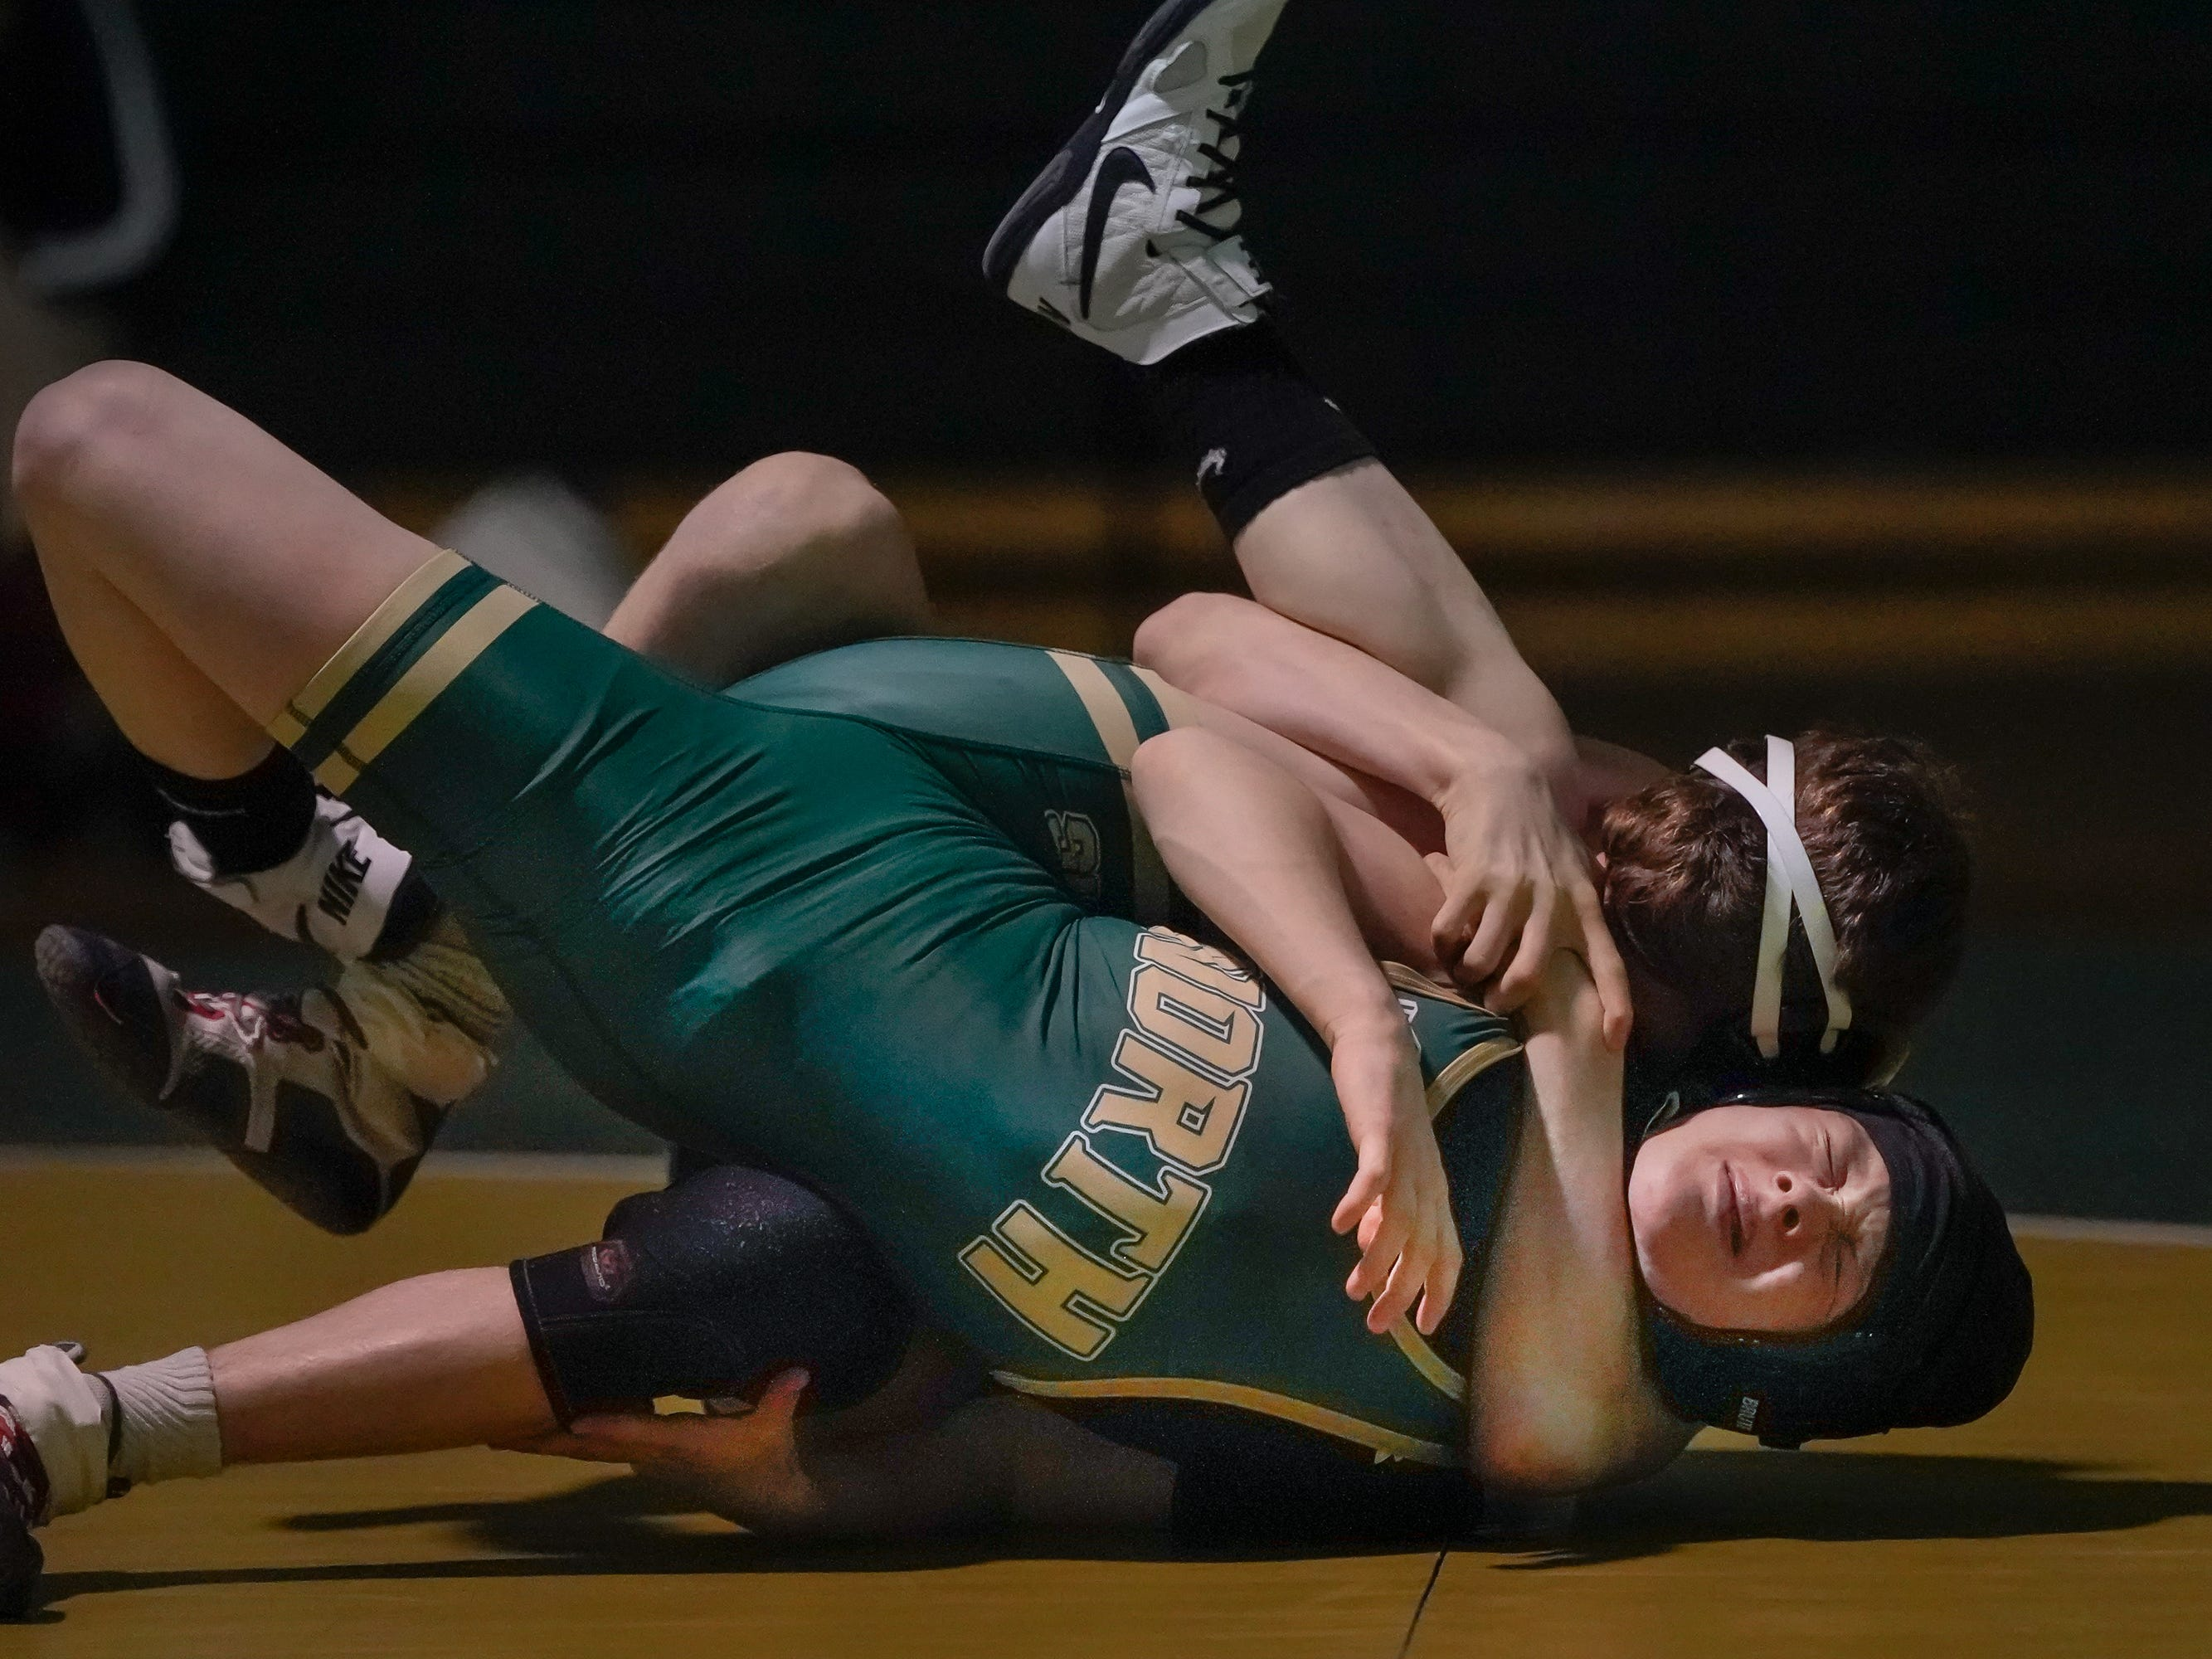 Alec Hunter of Oshkosh West and Carley Ochoa of Oshkosh North wrestle in the 113-pound weight class. The Oshkosh North Spartans hosted the Oshkosh West Wildcats in a Fox Valley Association wrestling match Thursday evening, January 17, 2019.